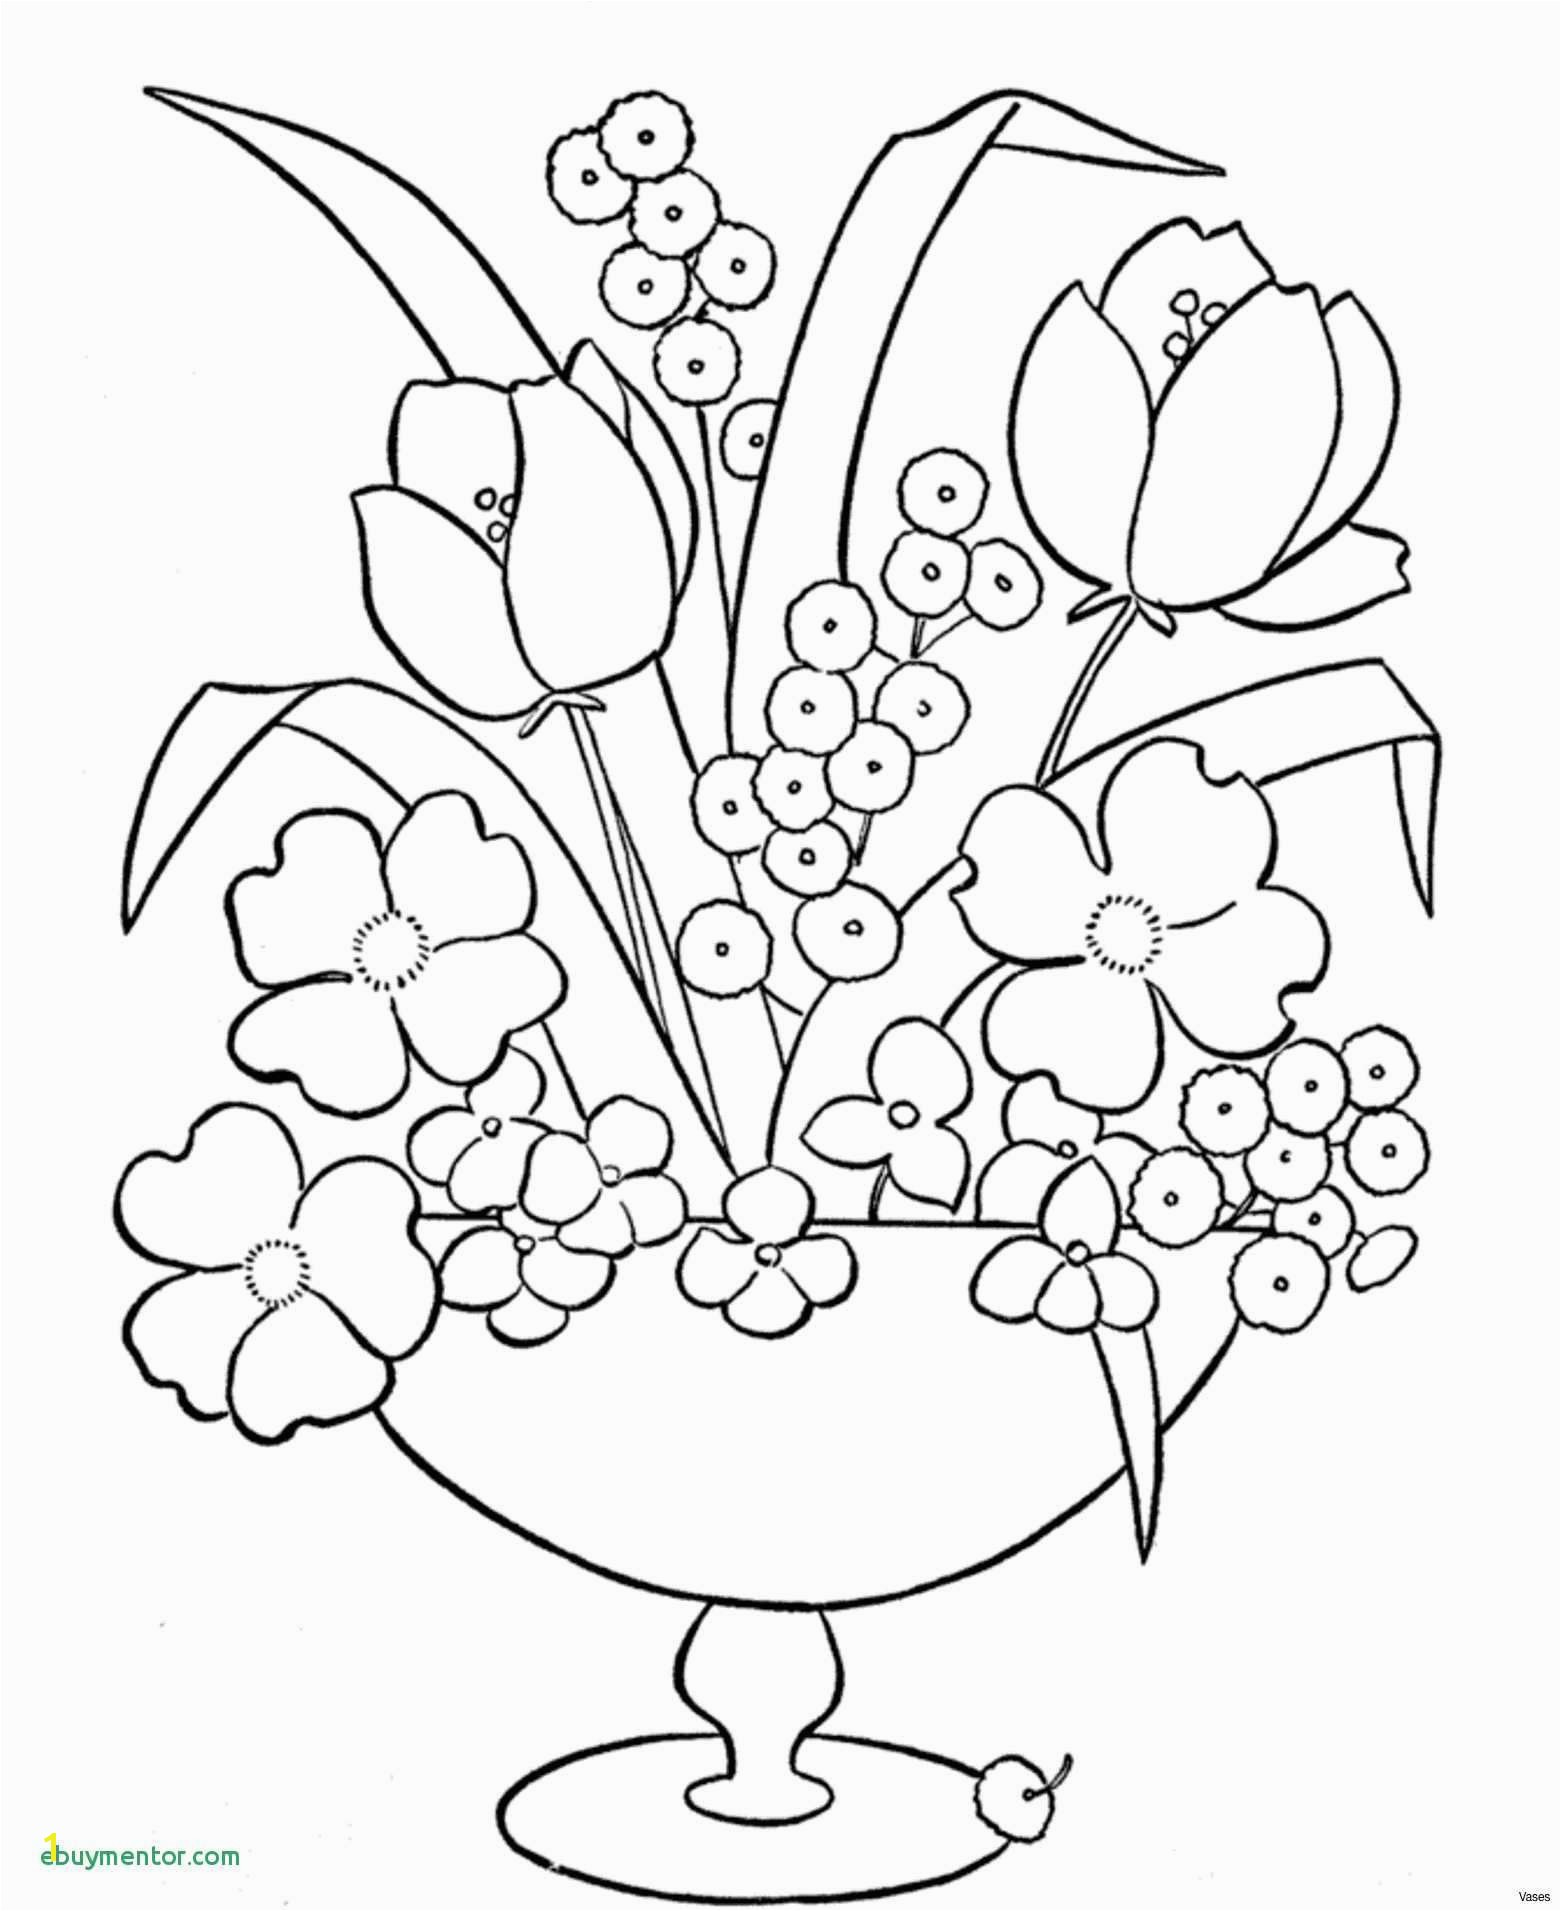 Coloring Sheets for Girls Flowers Printable Coloring Pages for Girls Lovely Printable Cds 0d – Fun